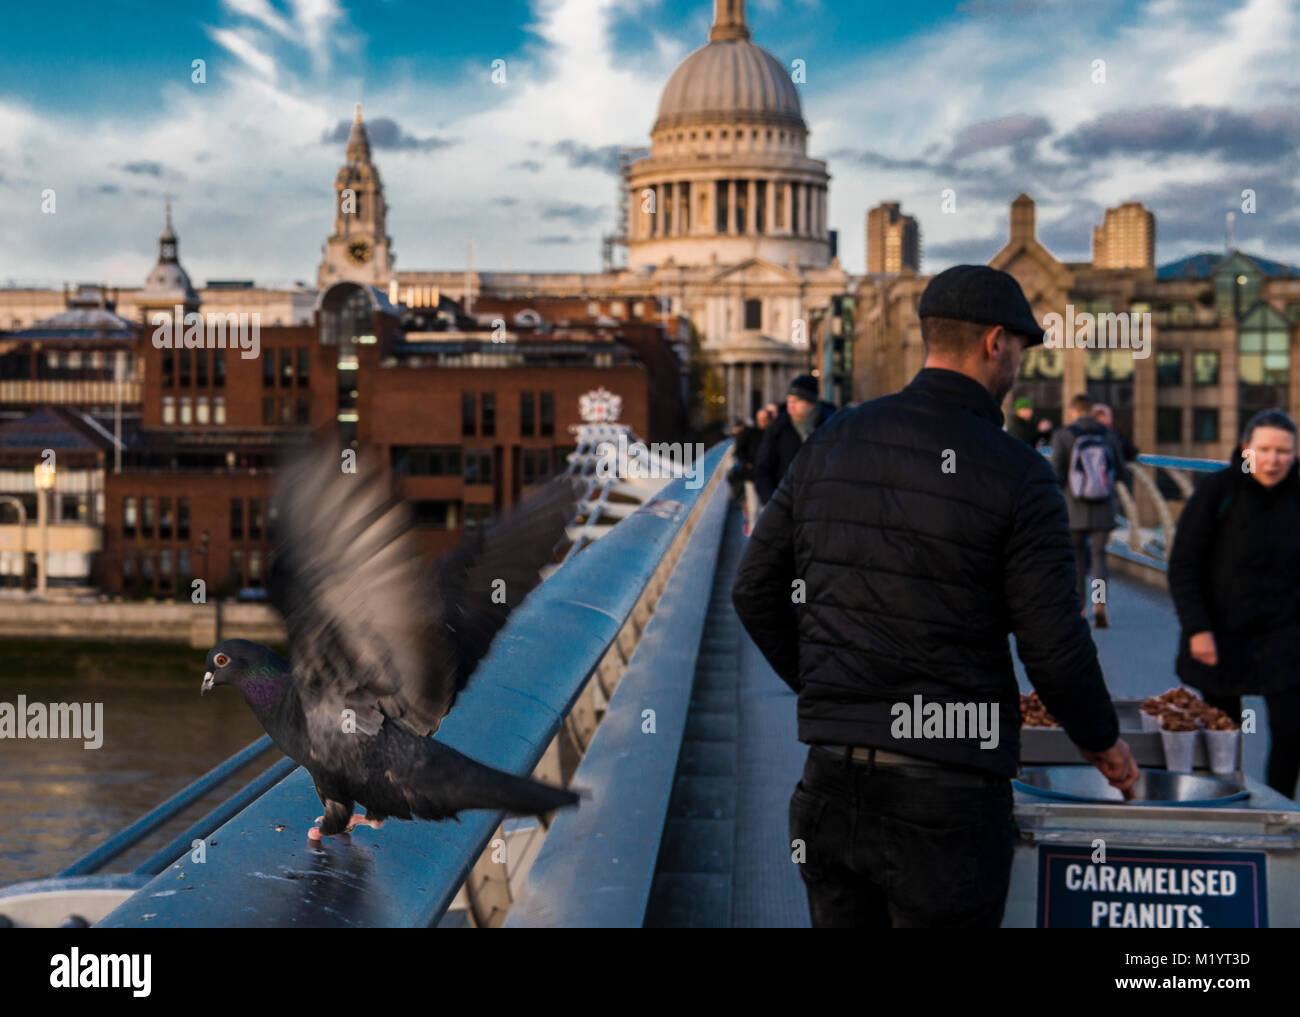 People and pigeon on Millennium Bridge with St Paul's Cathedral in background, London, UK - Stock Image